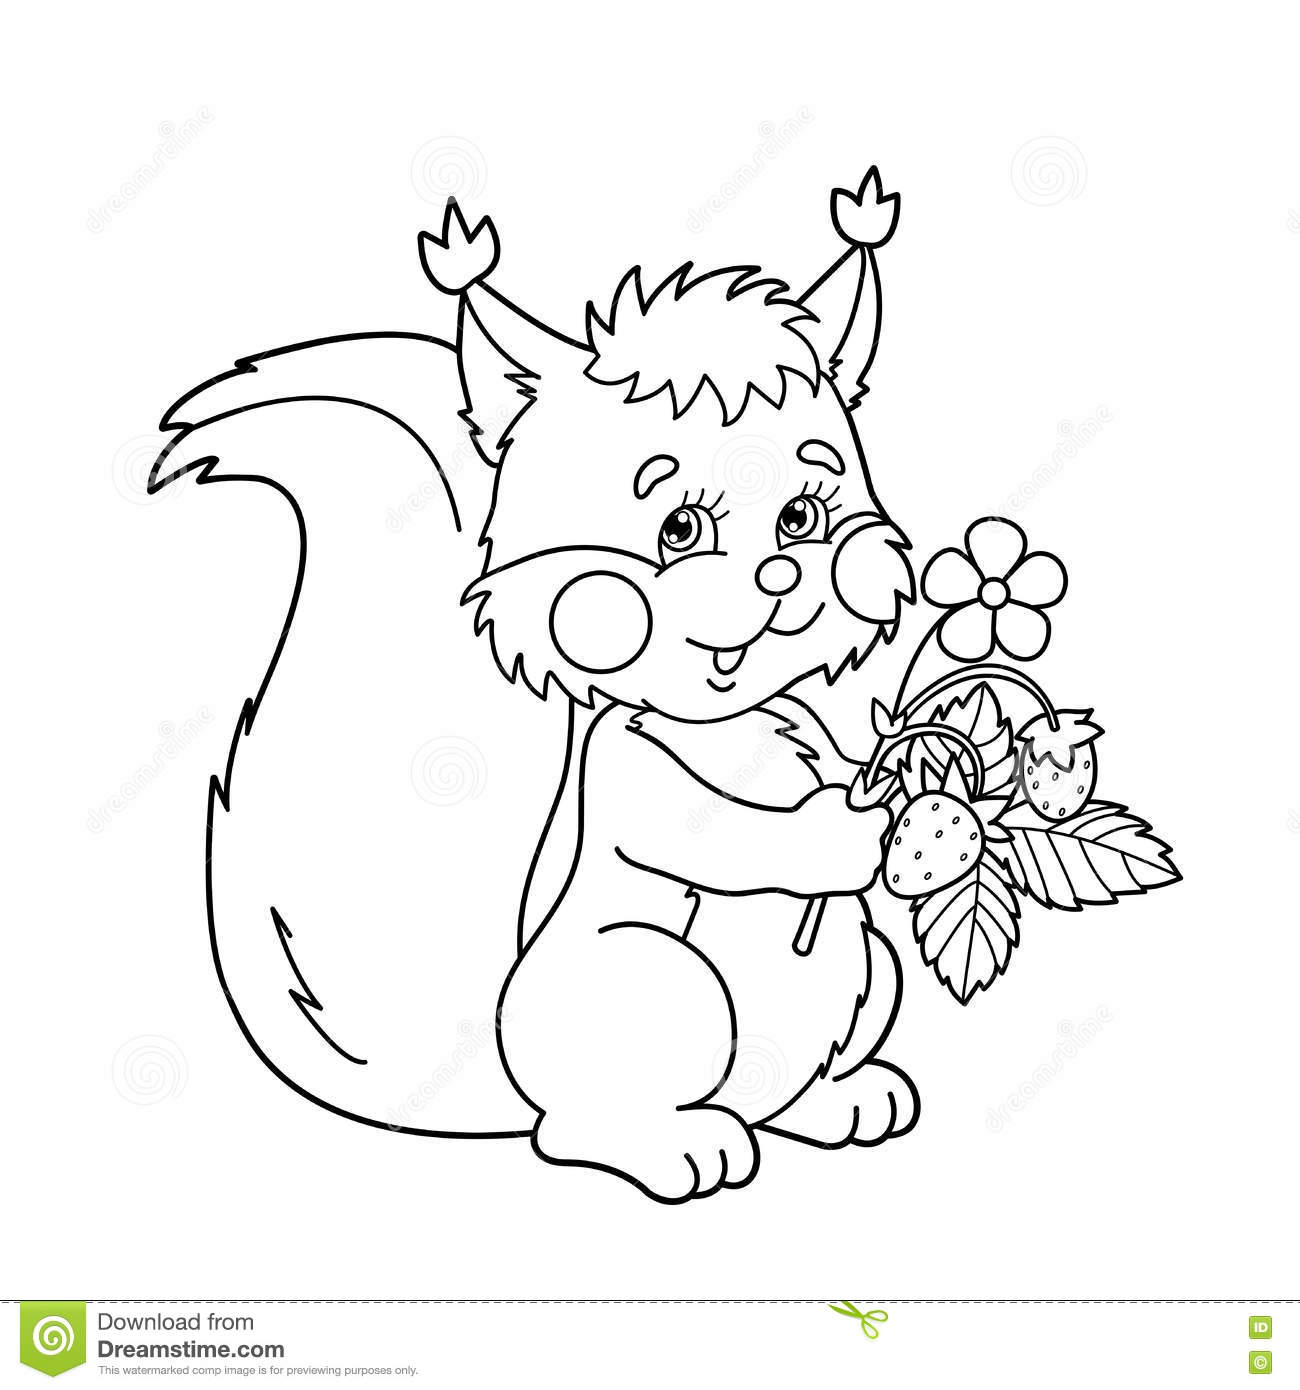 coloring page outline of cartoon squirrel with strawberries